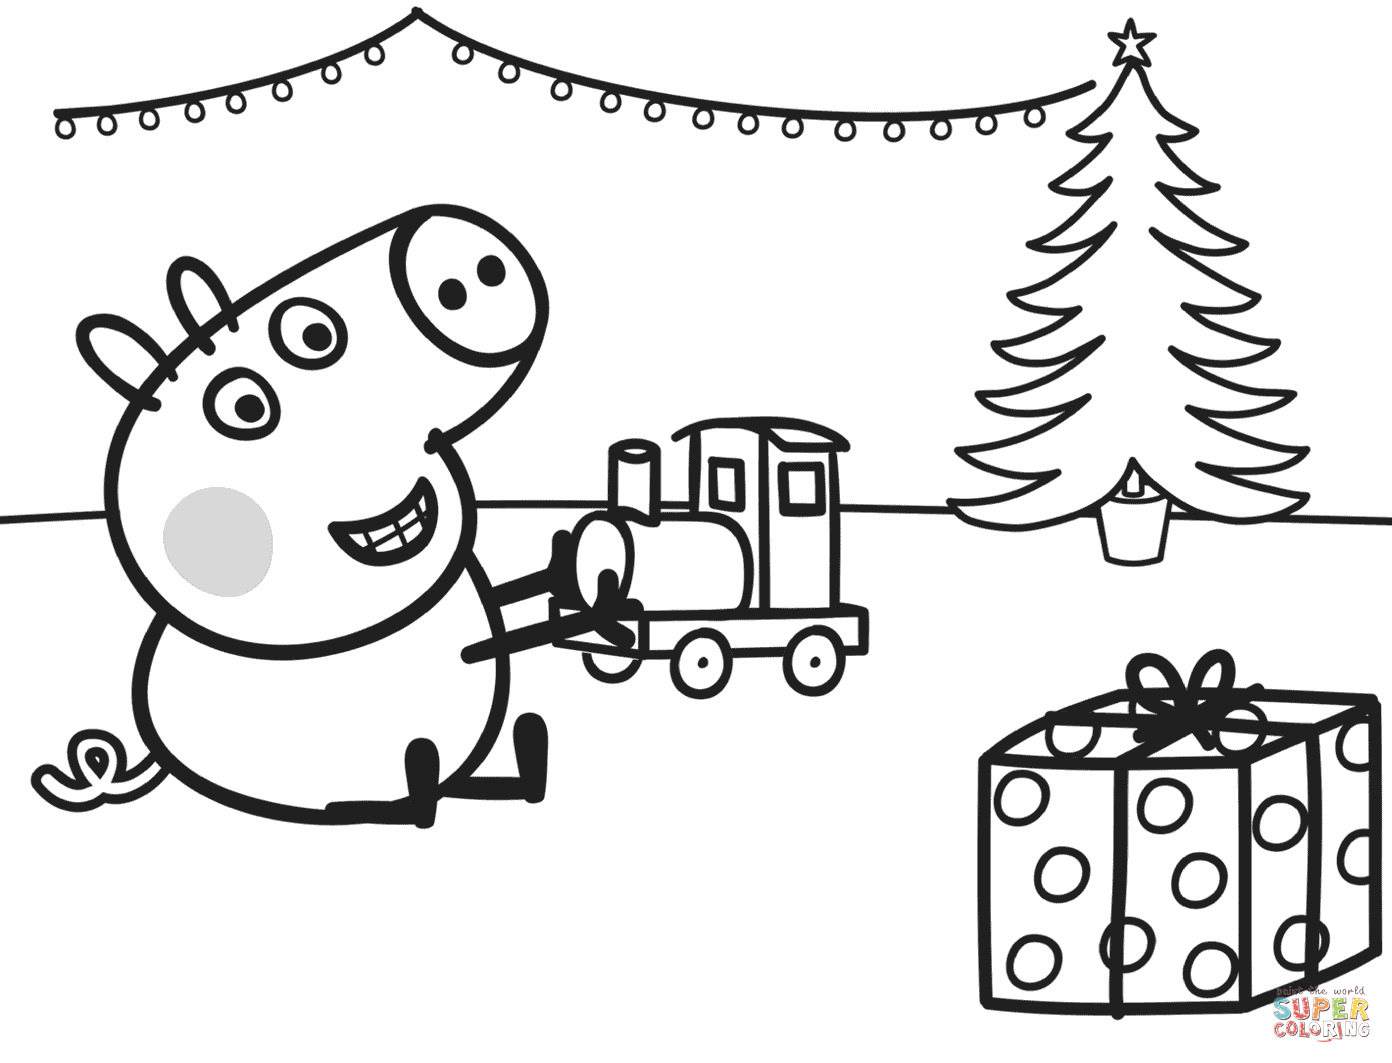 Peppa Pig Coloring Pages | Peppa pig coloring pages, Peppa pig ...